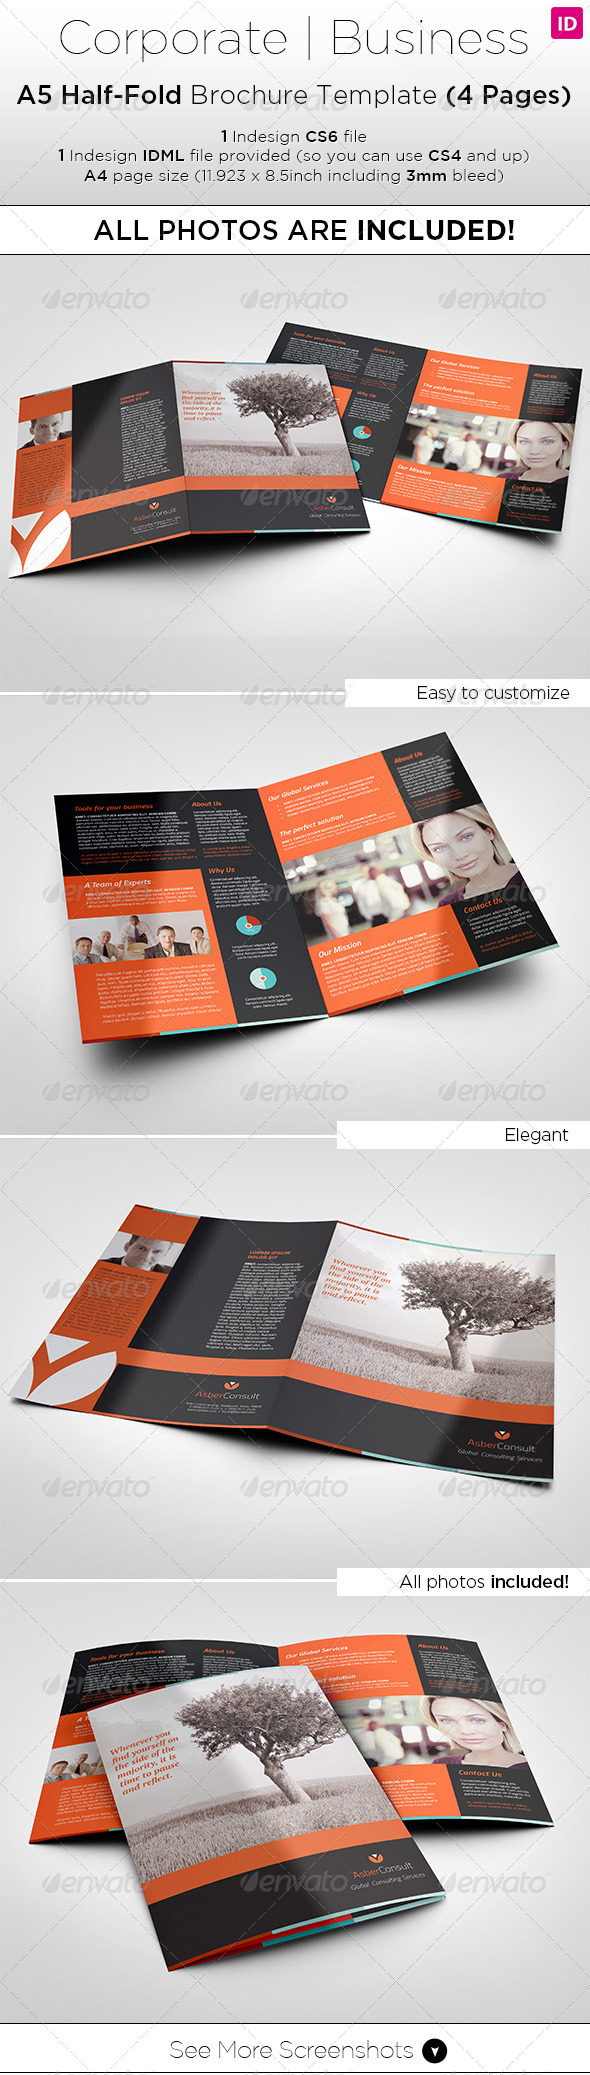 GraphicRiver A5 Half-Fold Brochure 4 pages Photo Included 8005409